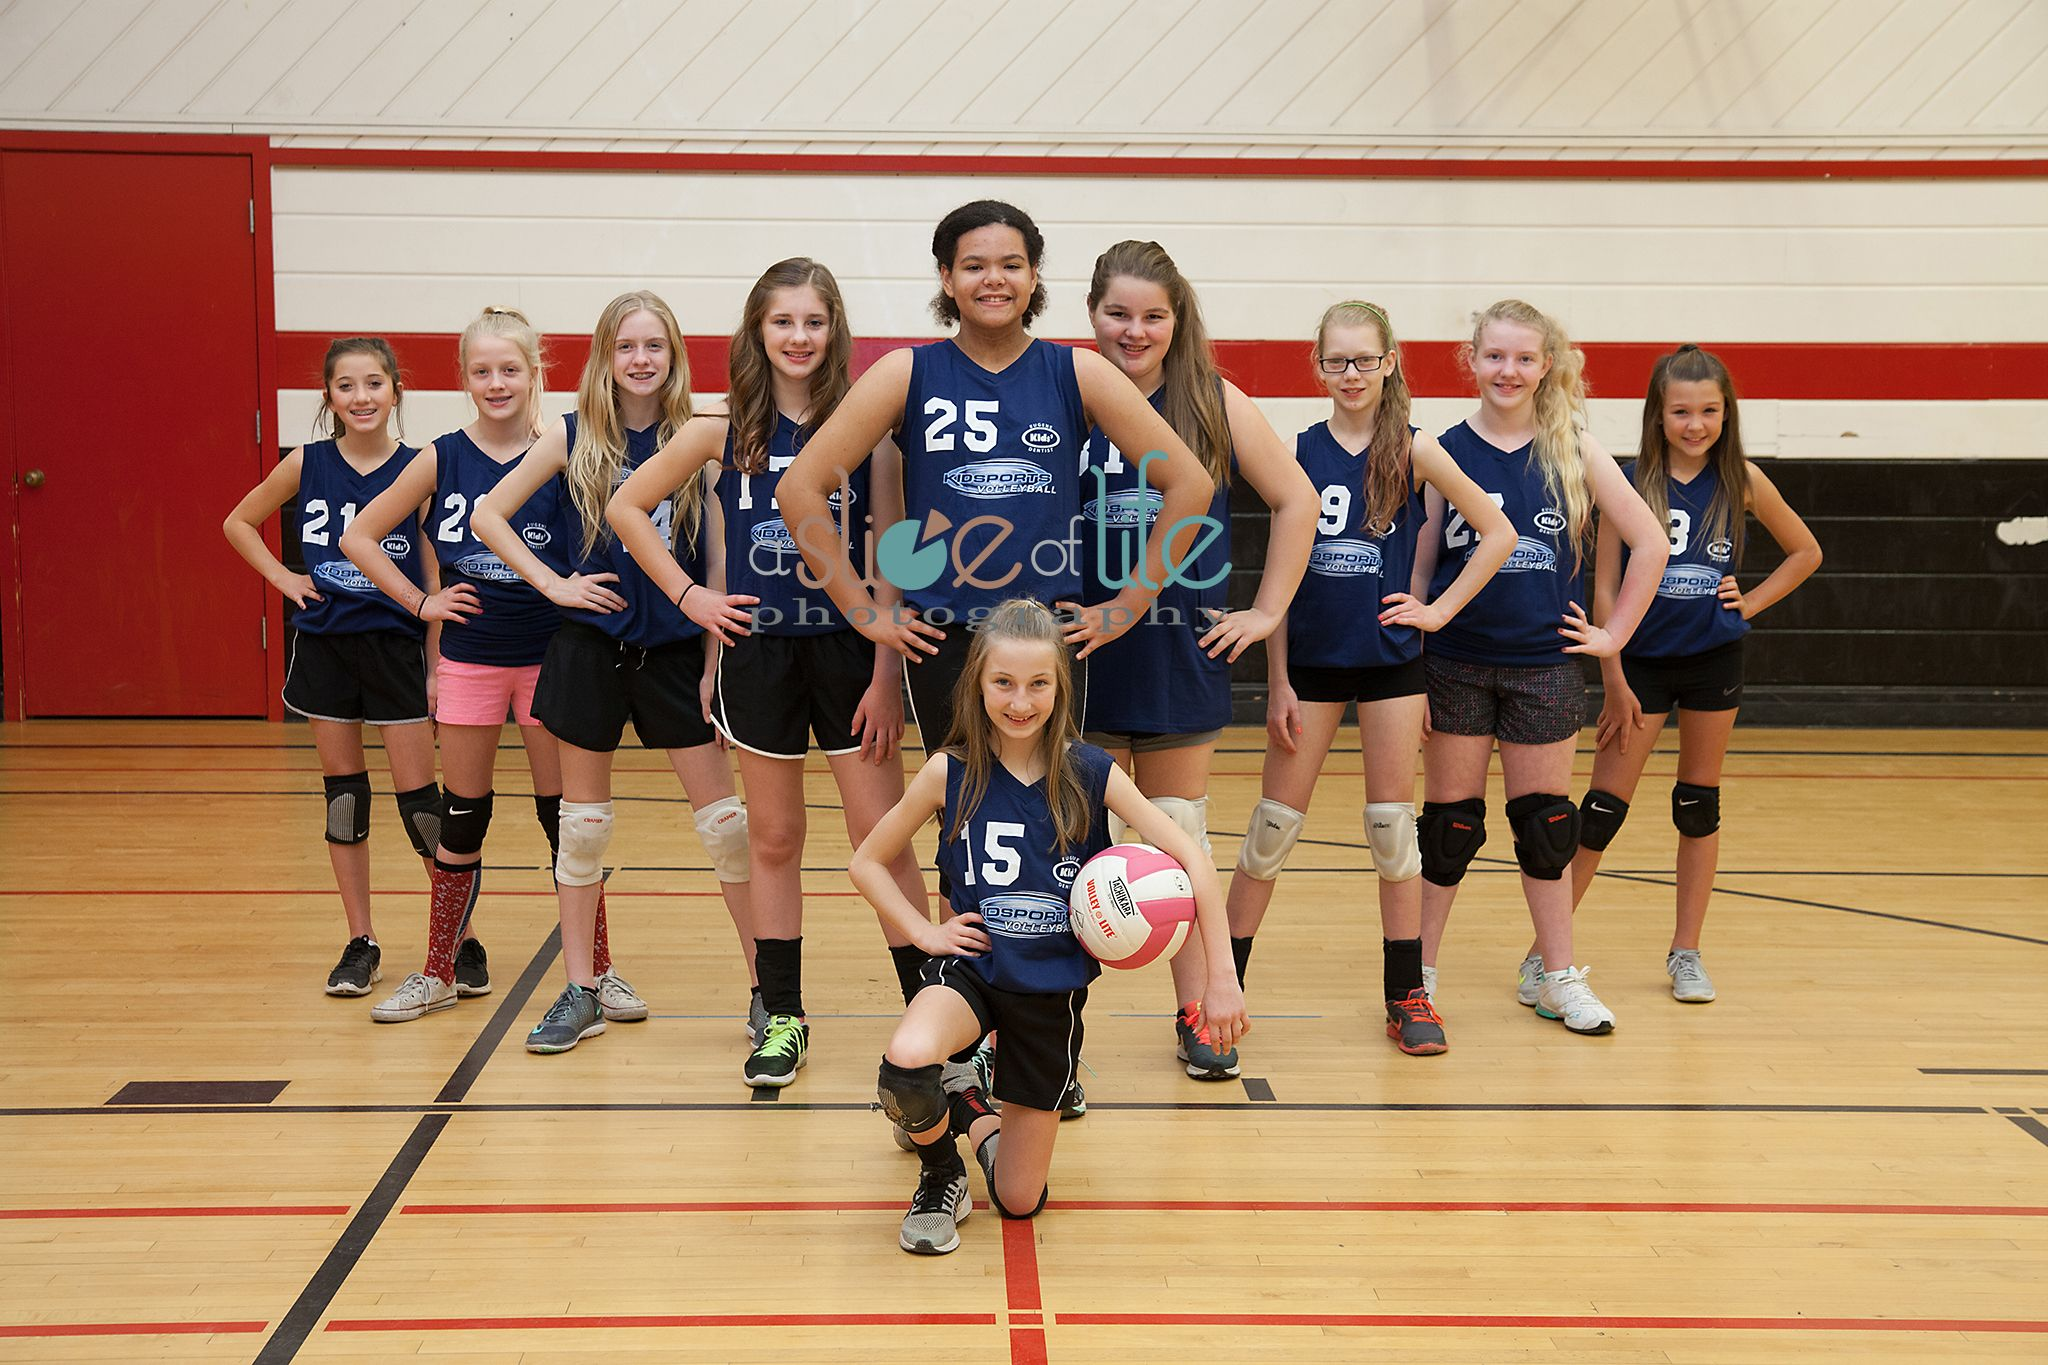 Volleyball Team Pose Volleyball Pictures Volleyball Team Sport Poster